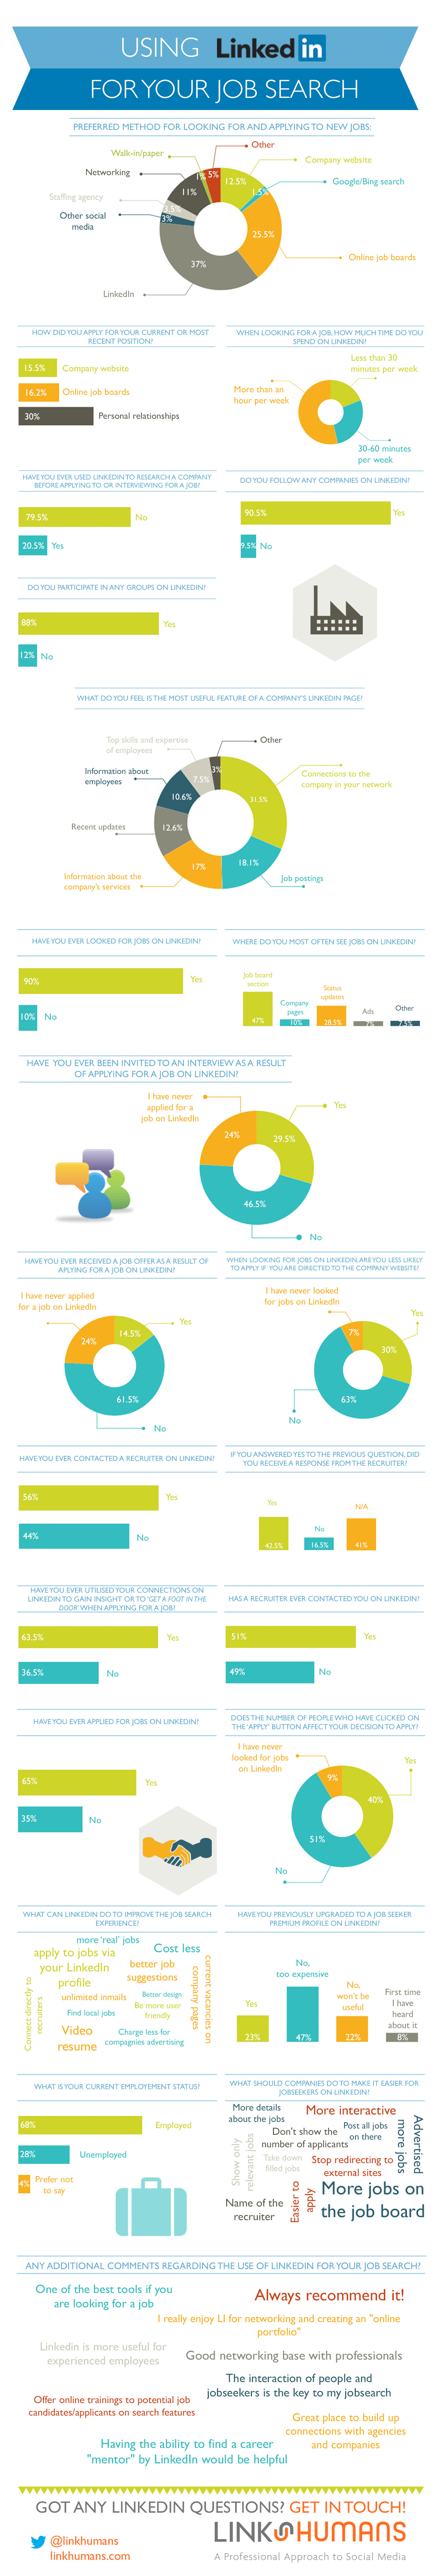 how do people use linkedin for job search?[infographic] via